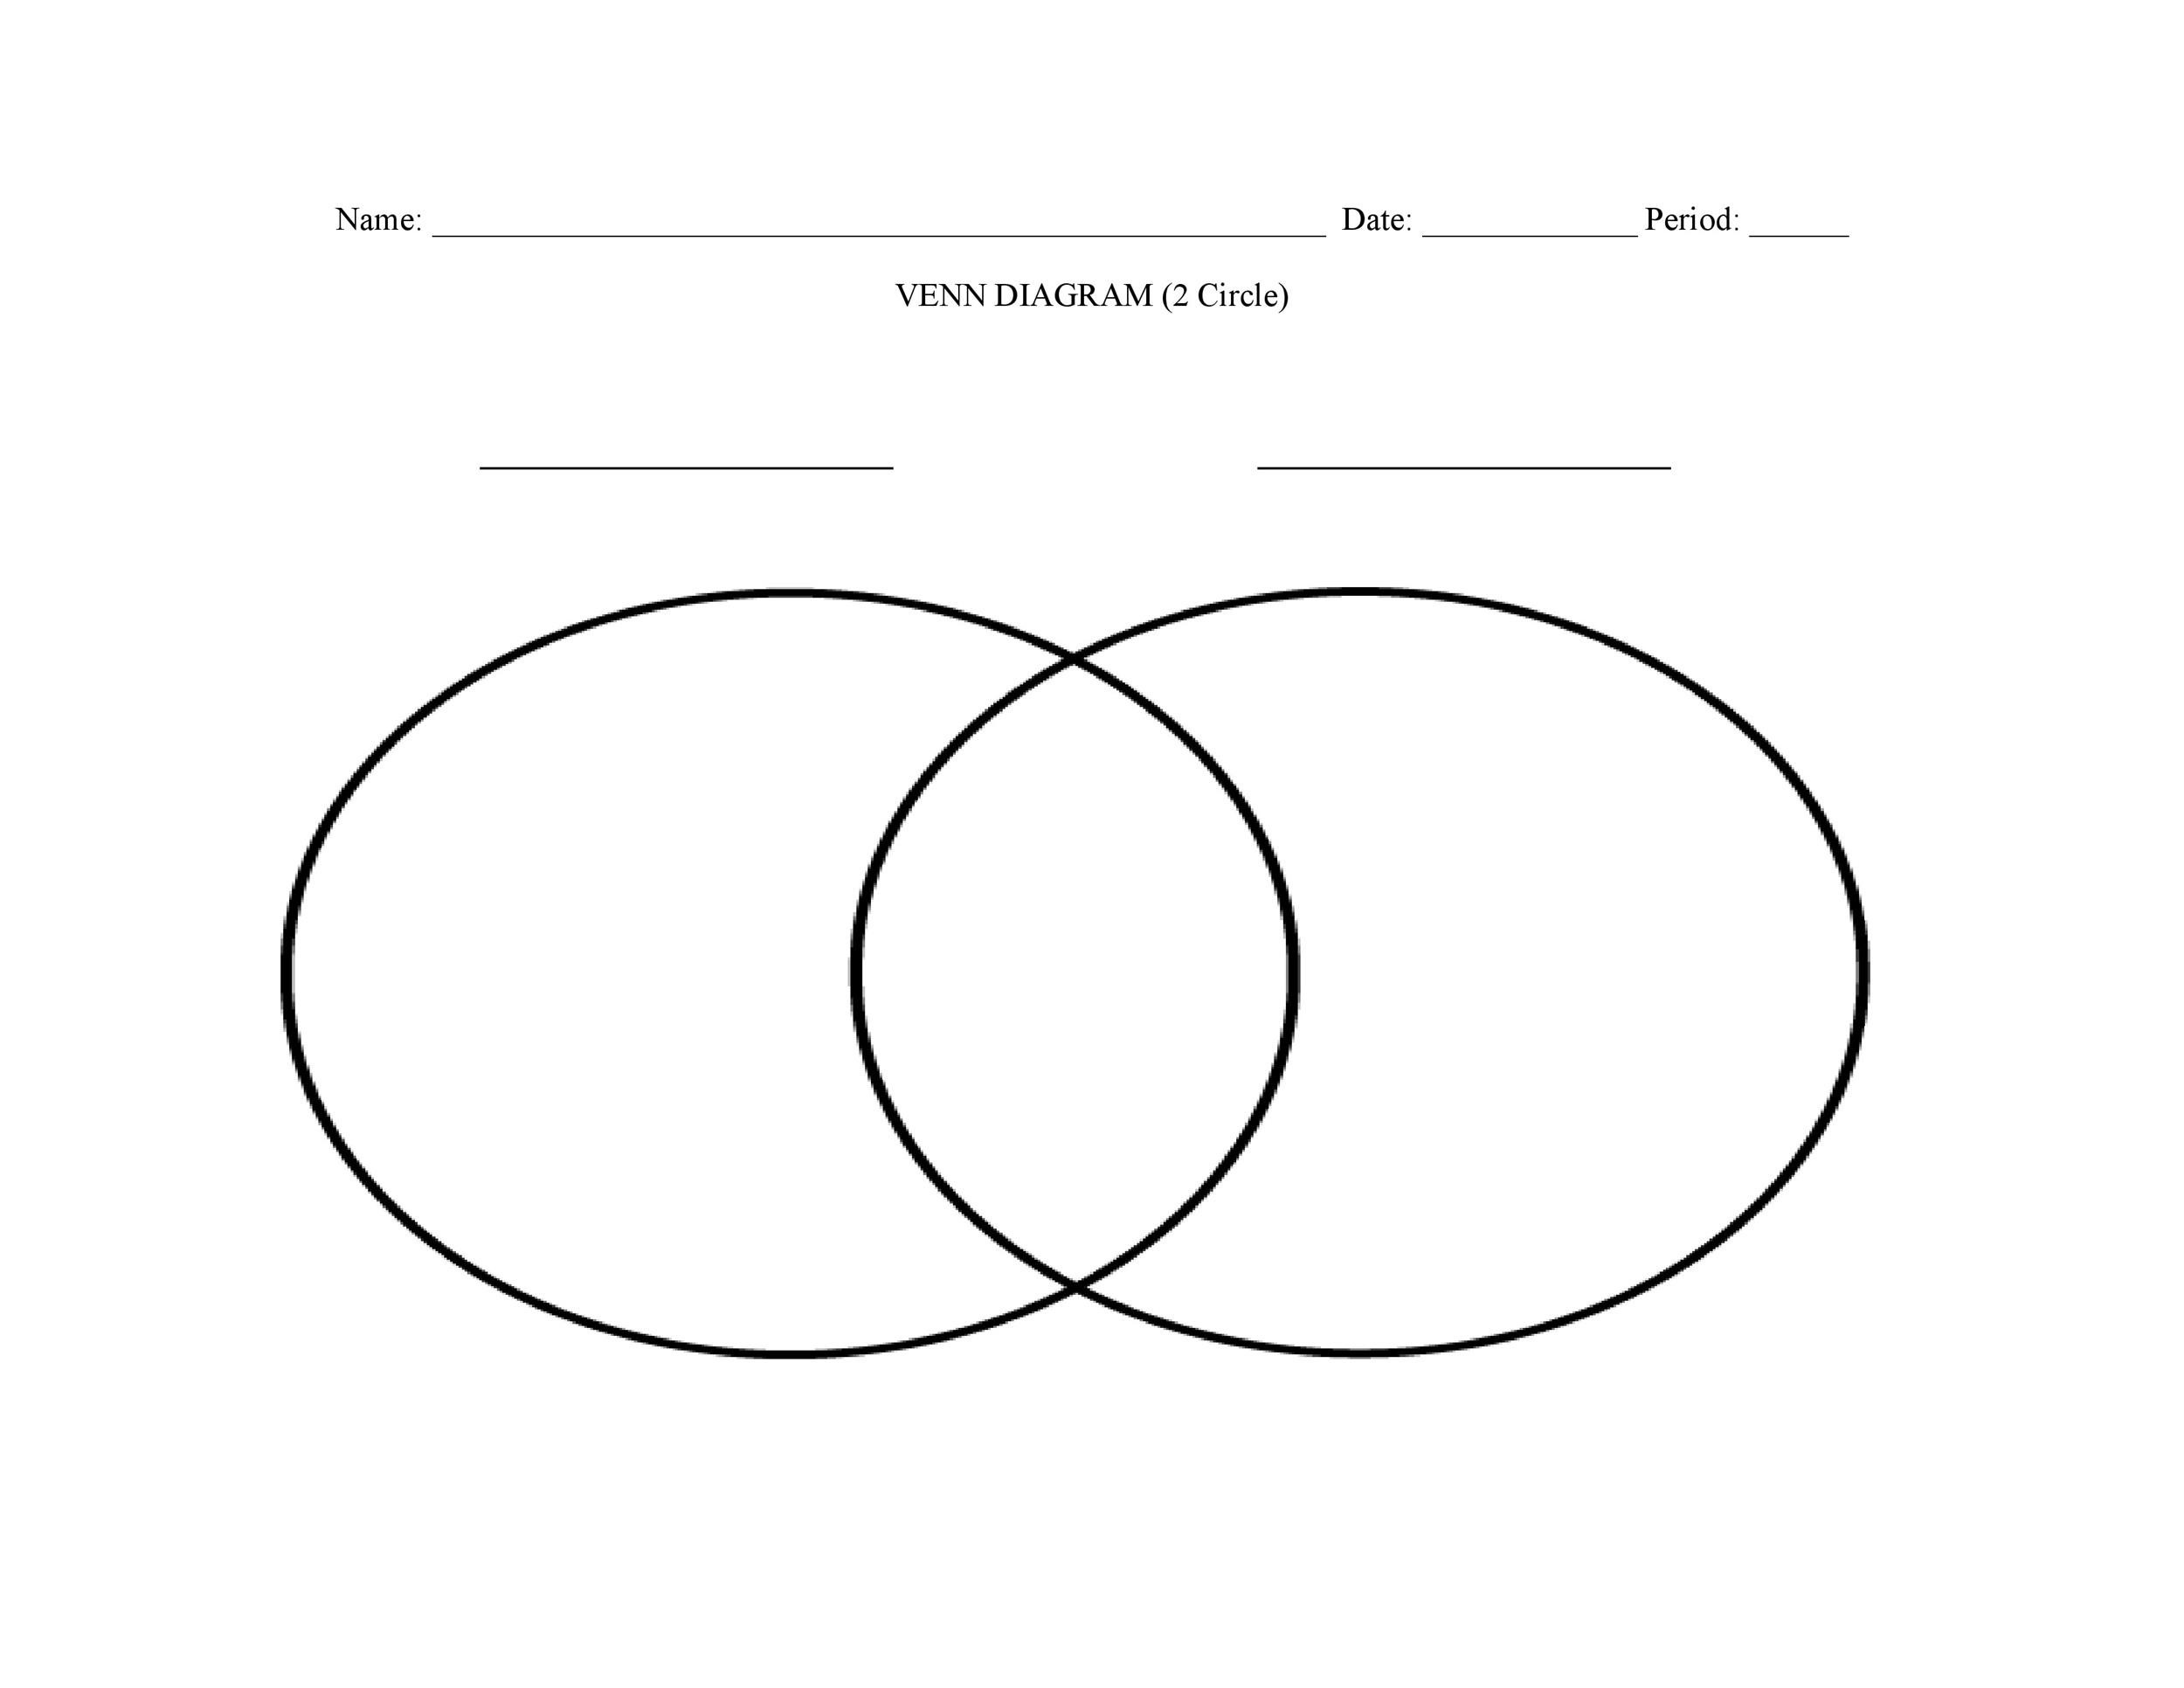 Circle S Venn Diagram Automotive Wiring Diagrams